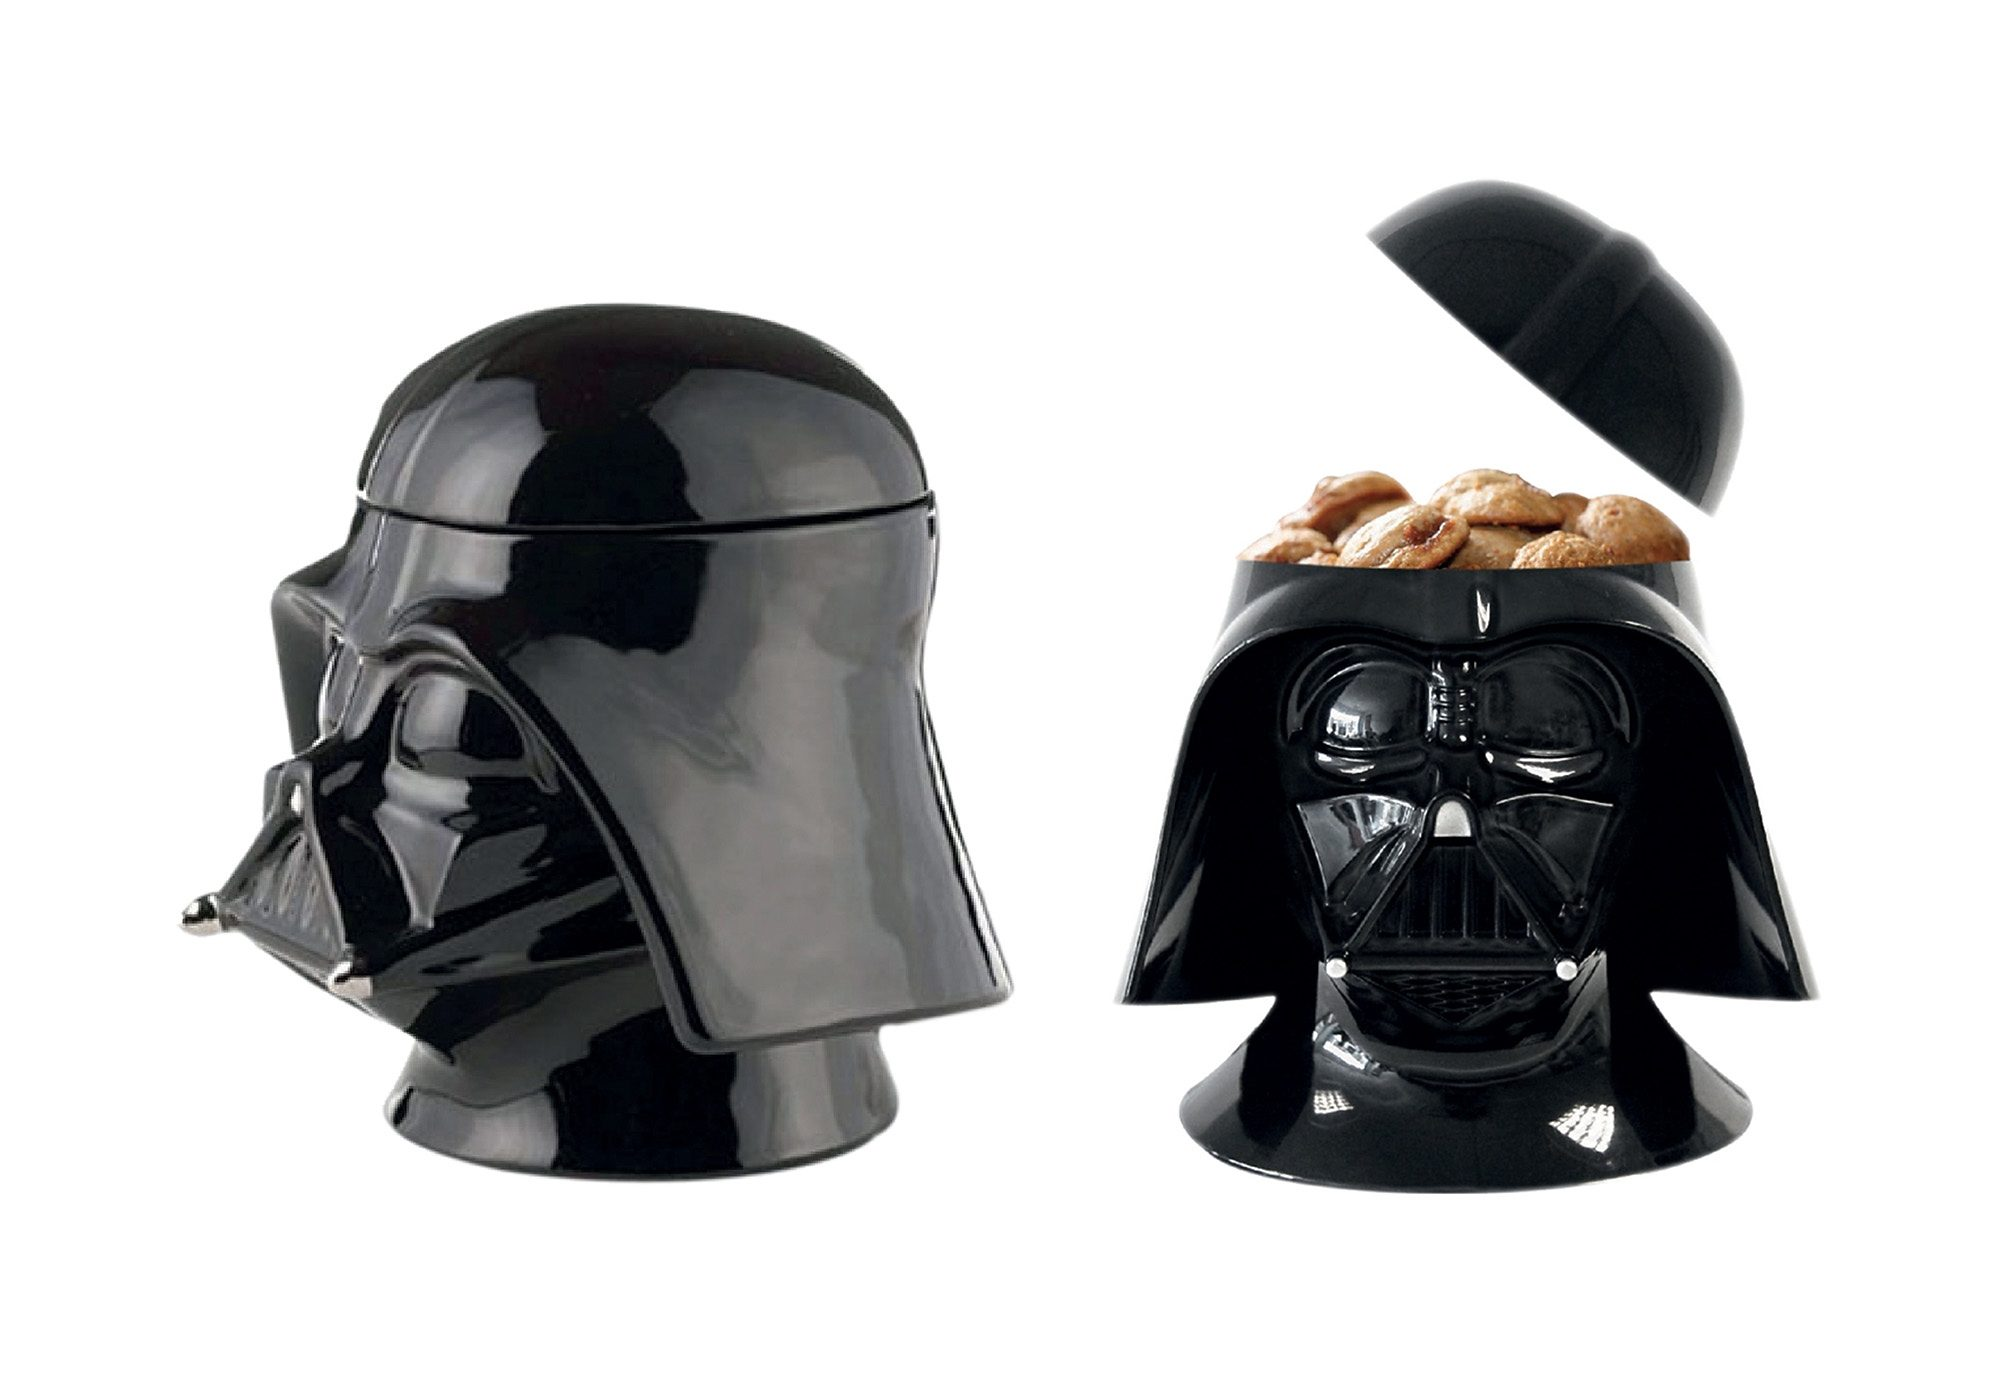 JOY TOY 3D Keksdose, »Star Wars Darth Vader«